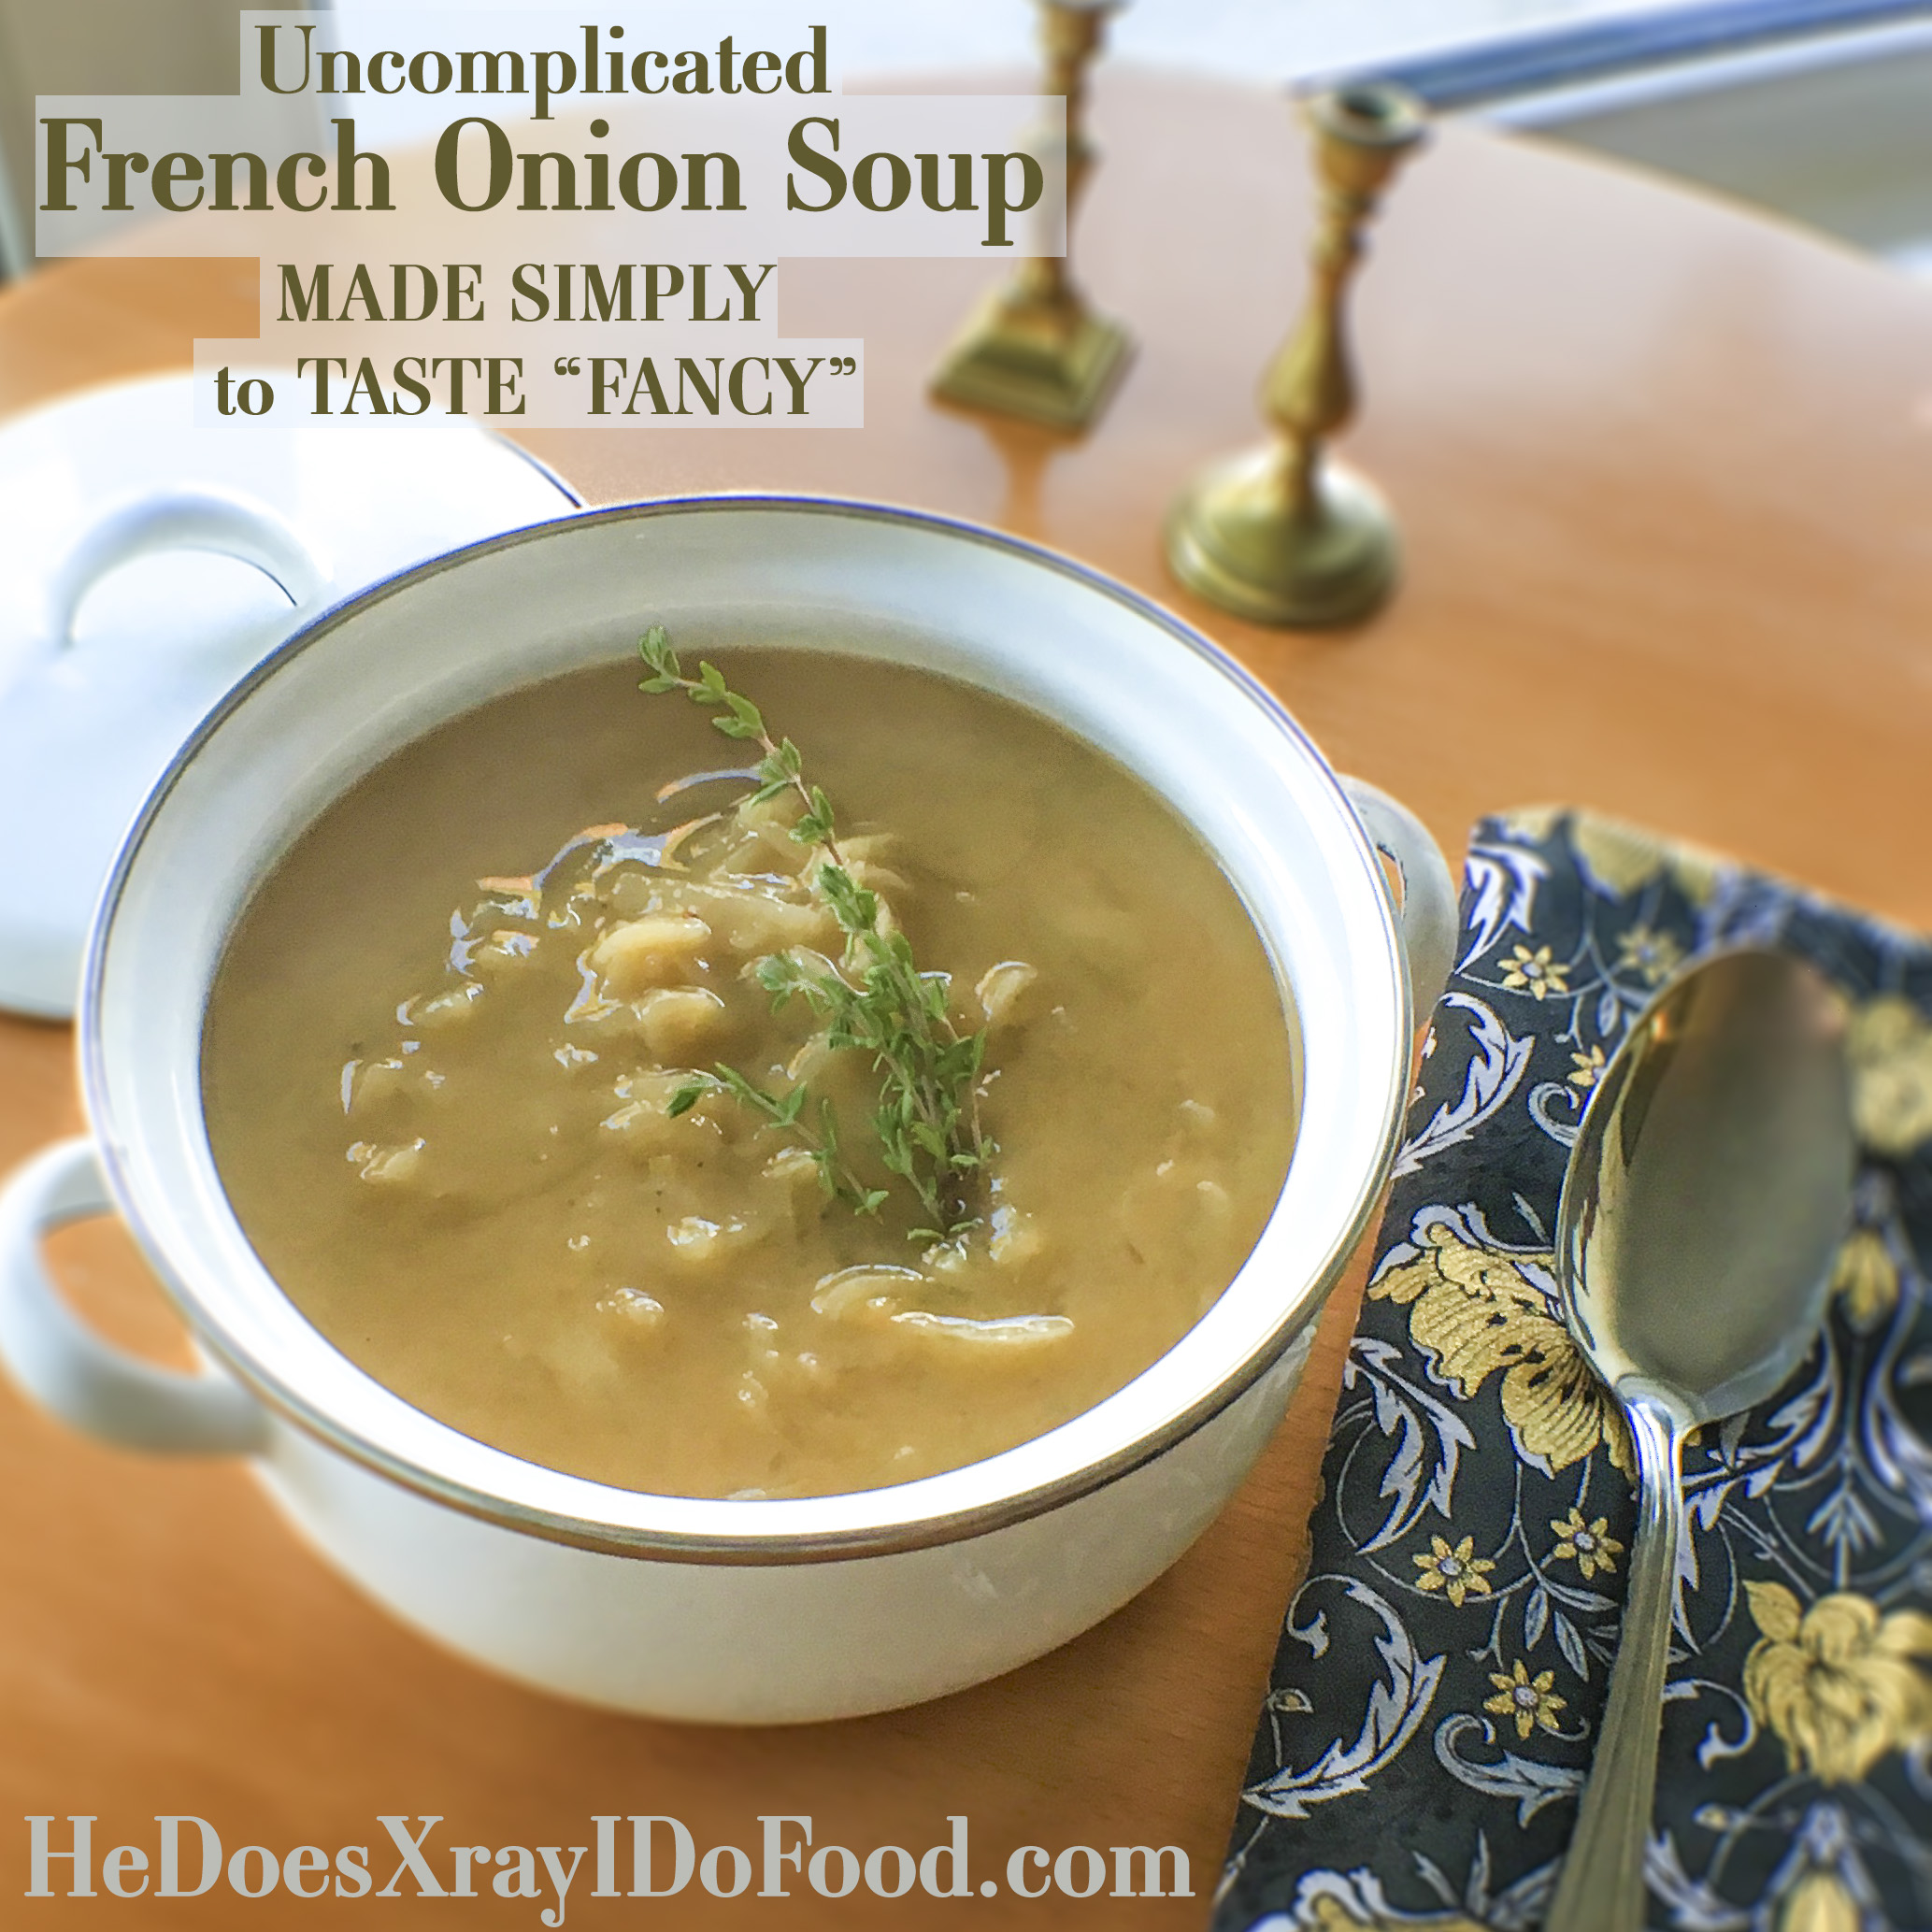 Uncomplicated French Onion Soup, Made Simply to Taste Fancy. Make Ahead and Freeze for those cold snaps!-HeDoesXrayIDoFood.com